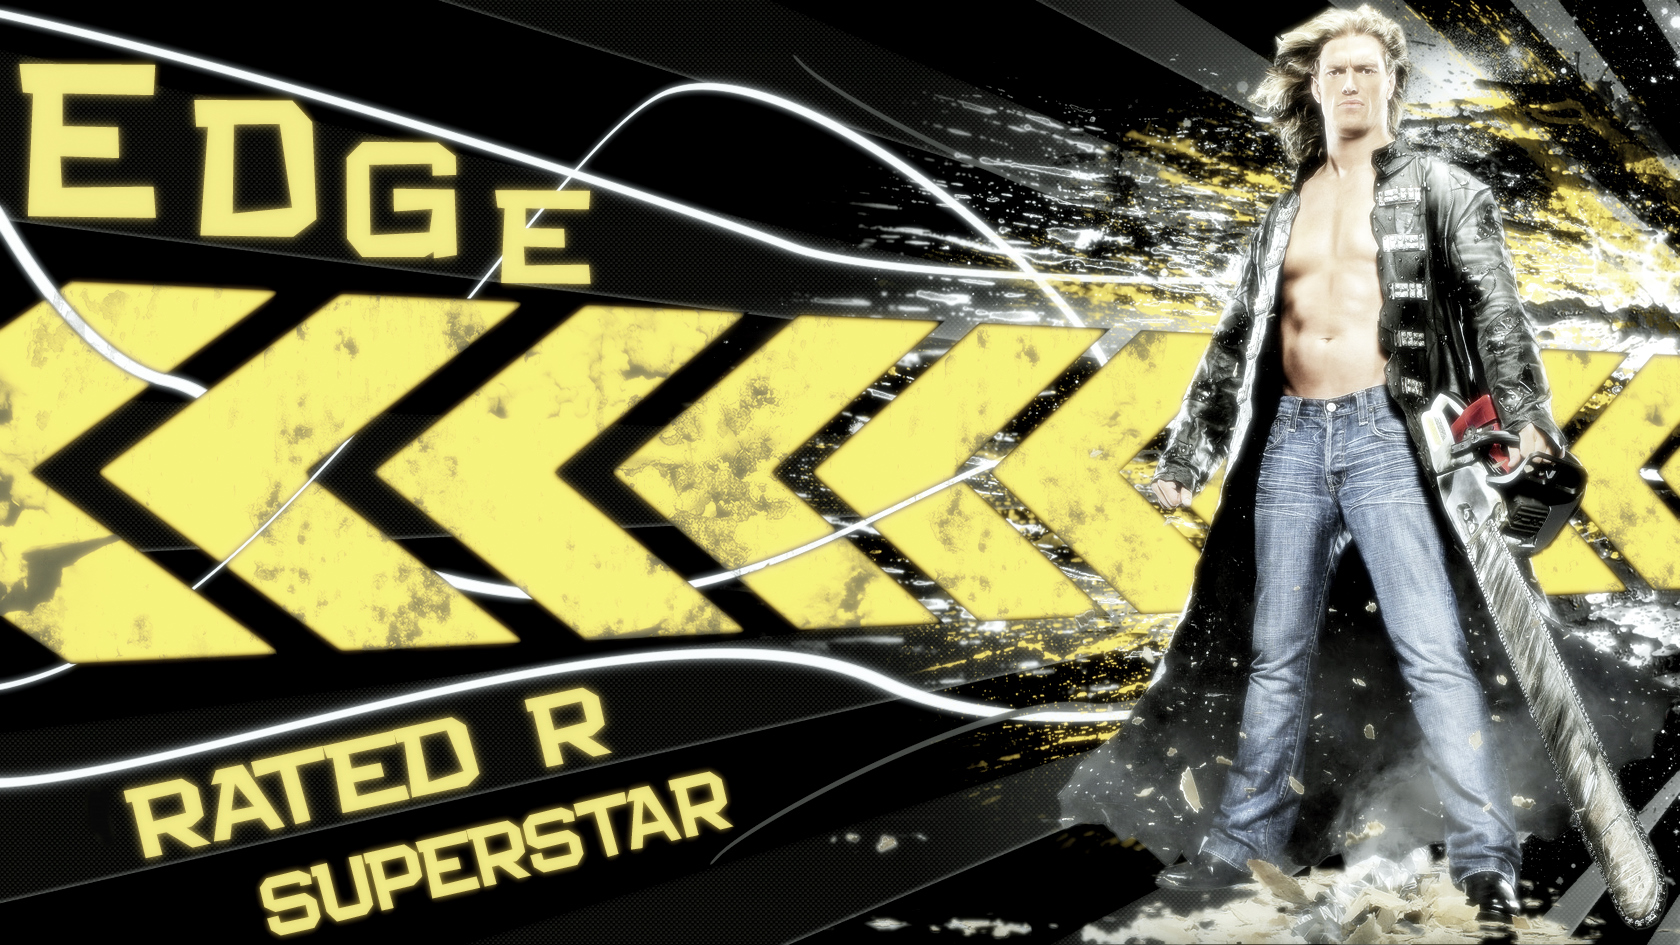 wwe,edge rated rgogeta126 on deviantart